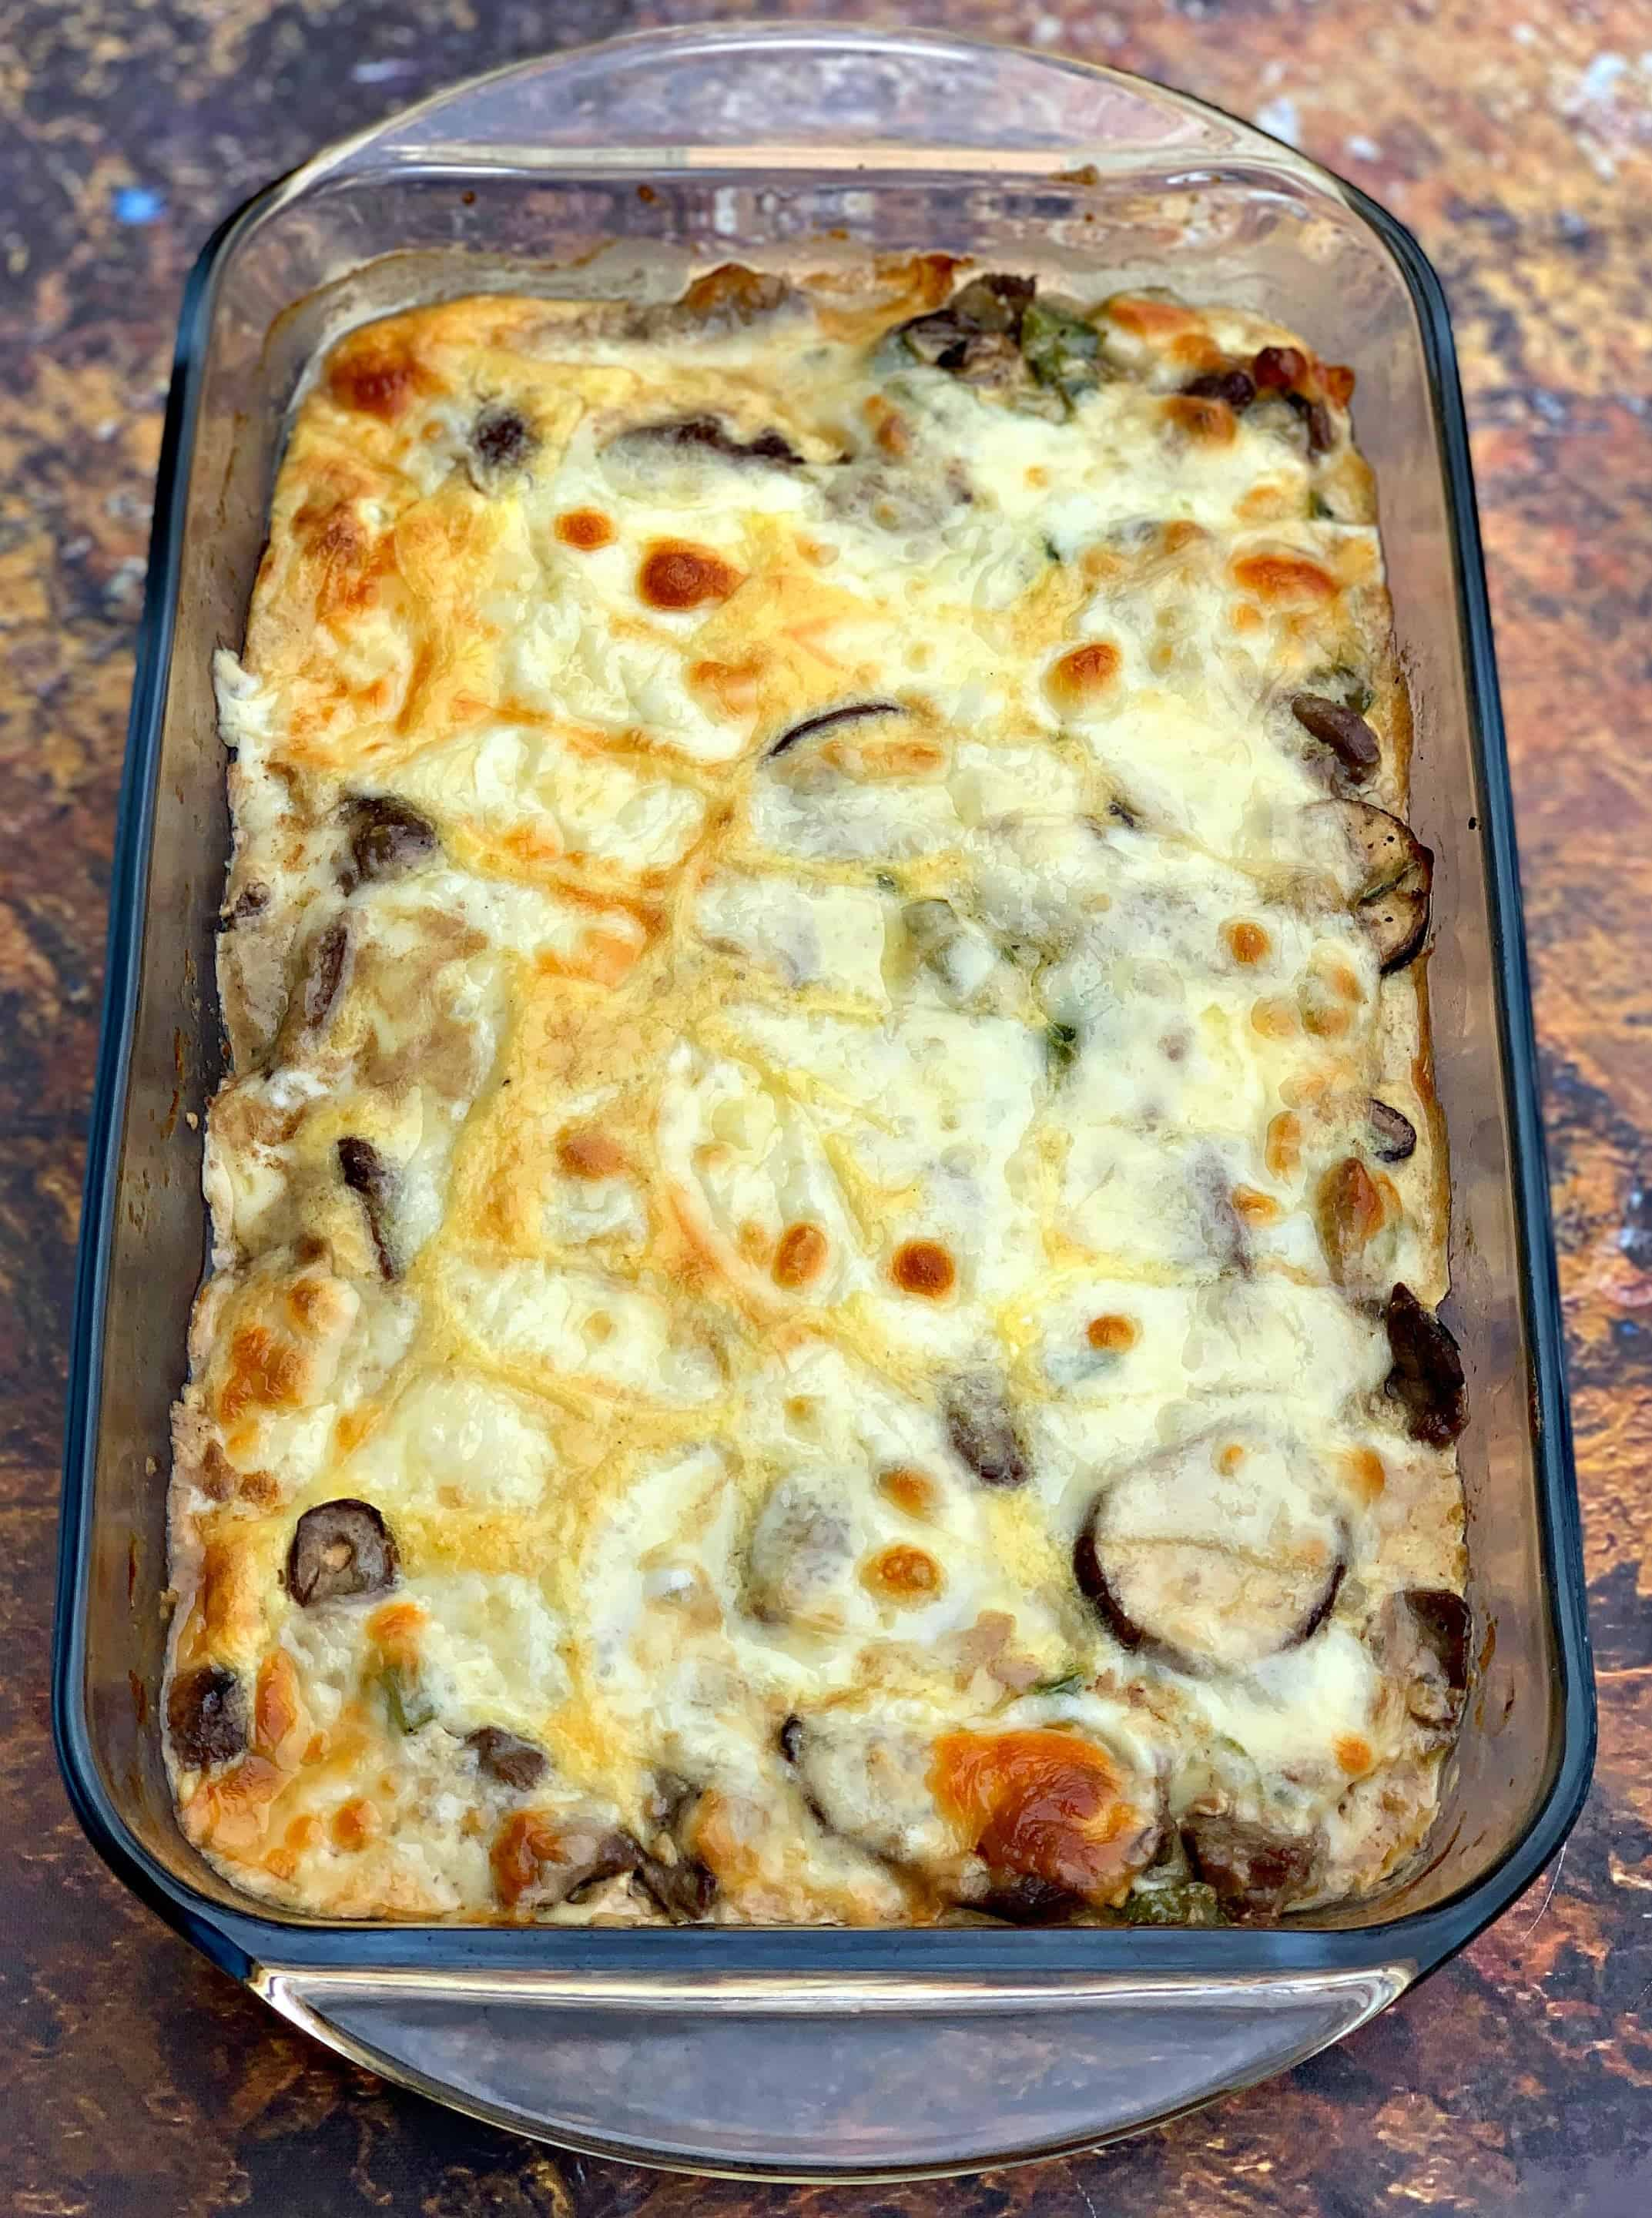 keto low carb philly cheesesteak in a glass pan